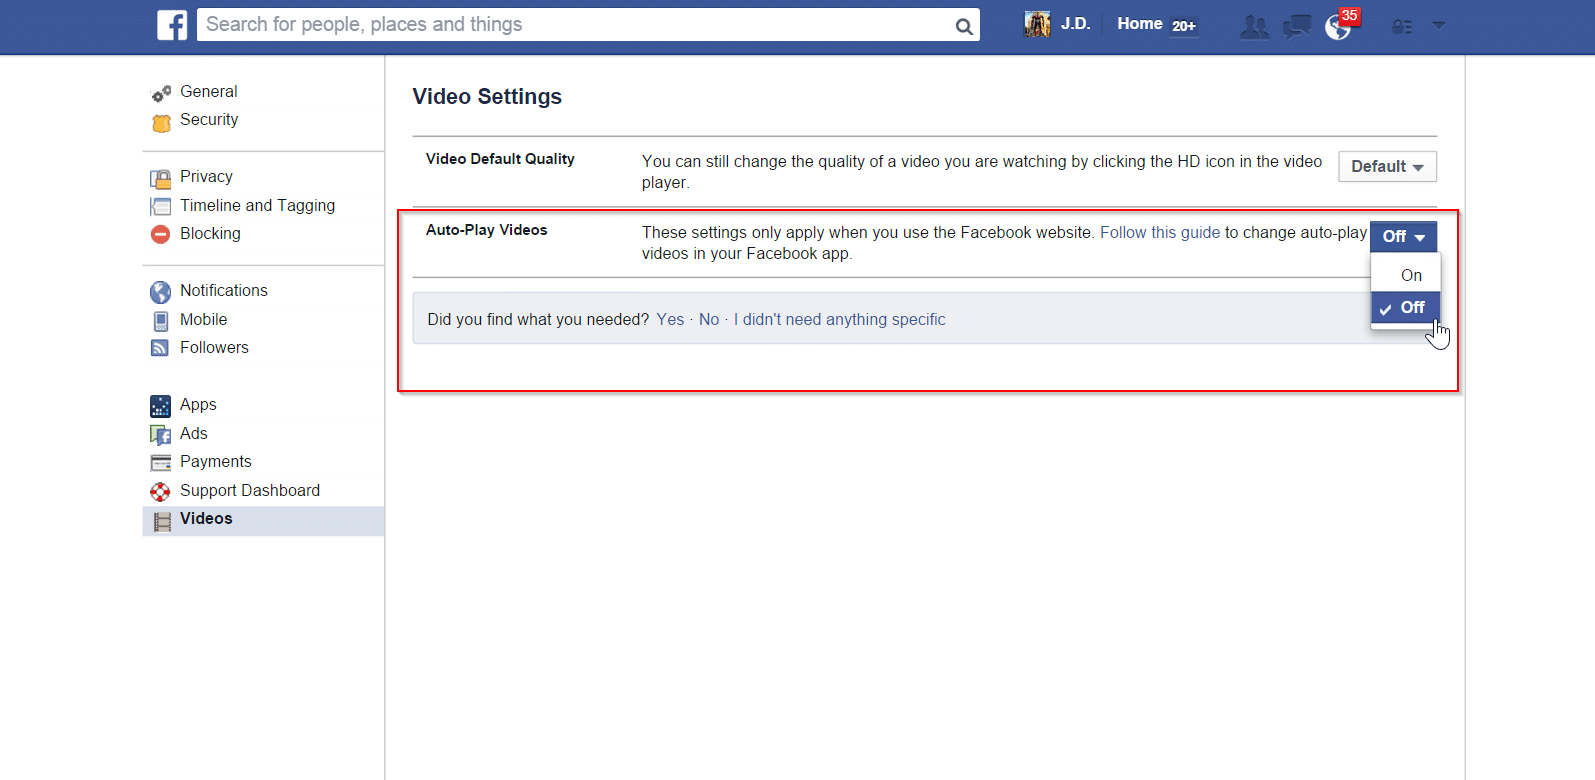 10 19 21 29 16 35 video settings facebook turn auto play videos off